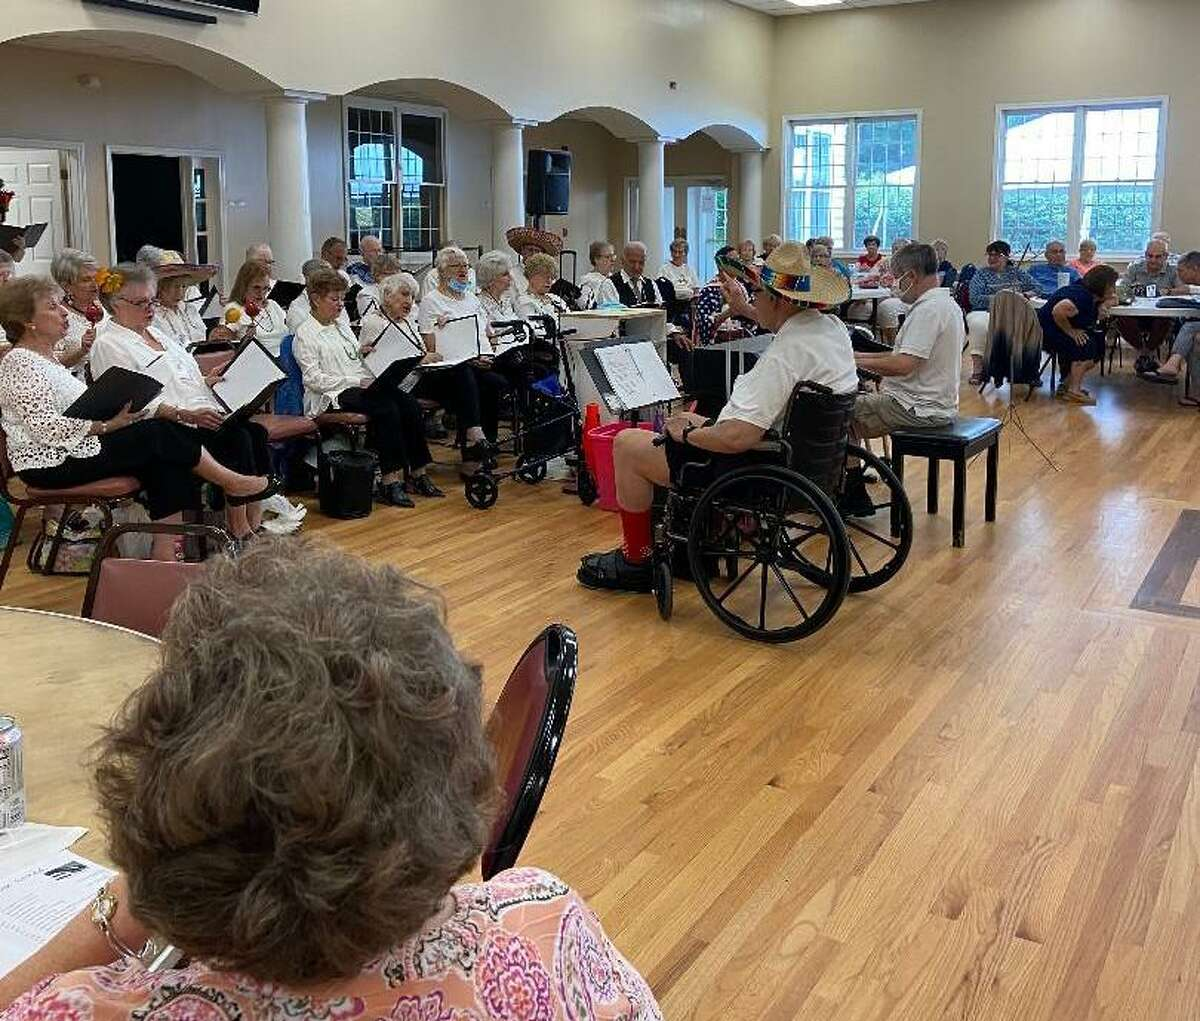 The Shelton Songsters were back in full force July 23, at the Shelton Senior Center. The chorus held its first concert since prior to the pandemic.